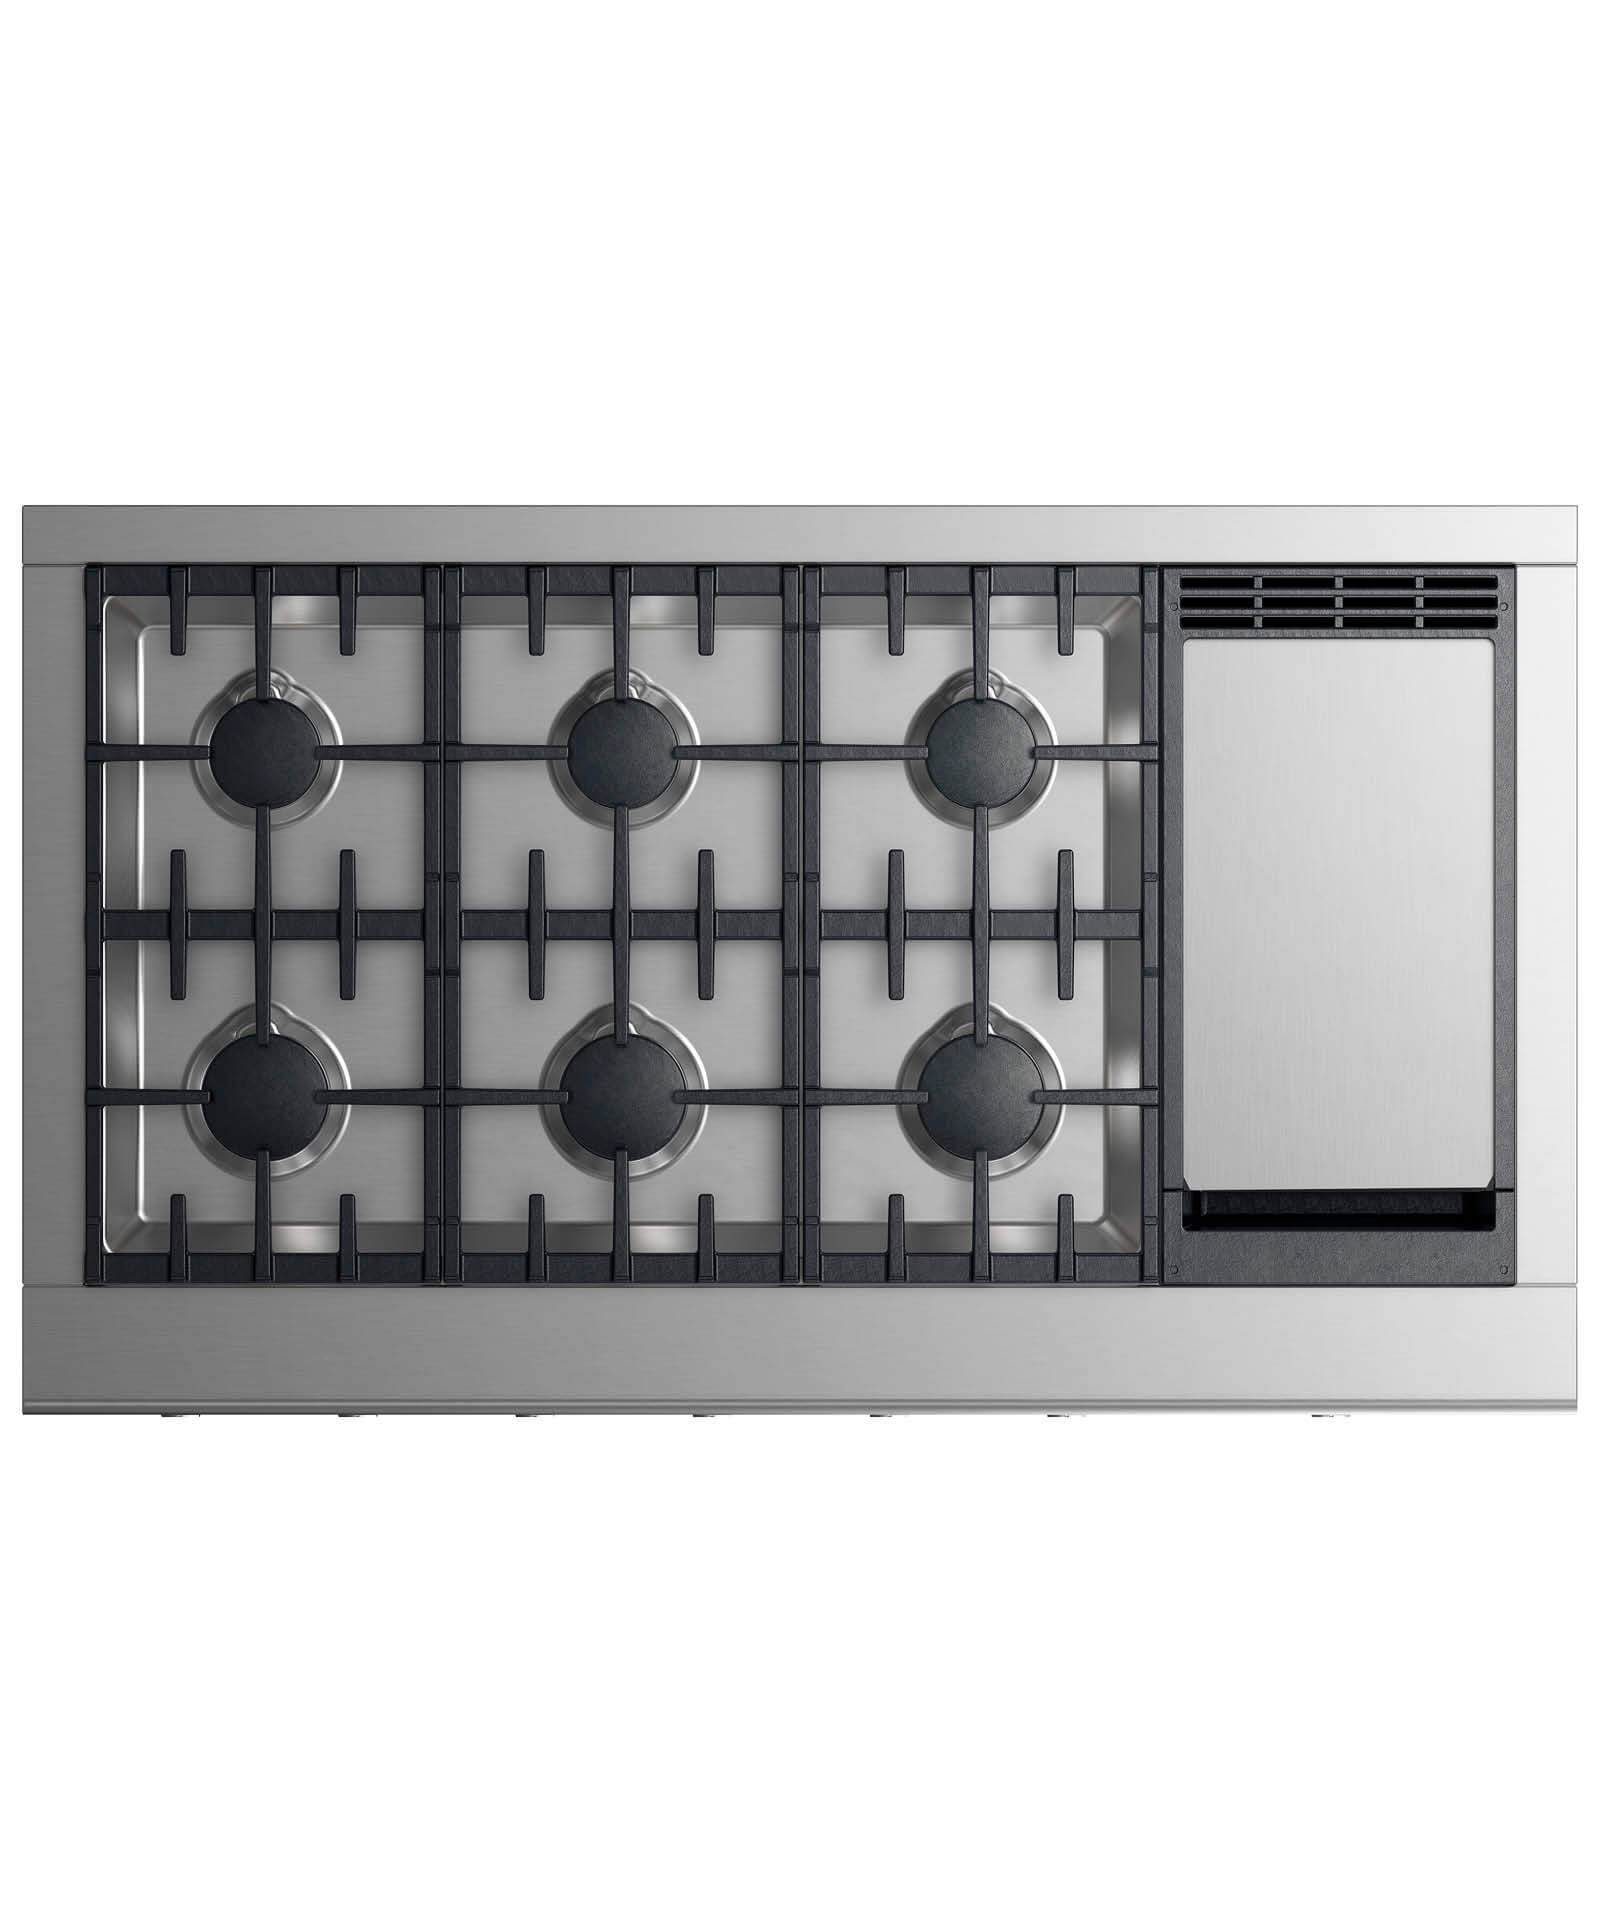 "Fisher and Paykel Gas Rangetop 48"", 6 burners with griddle"